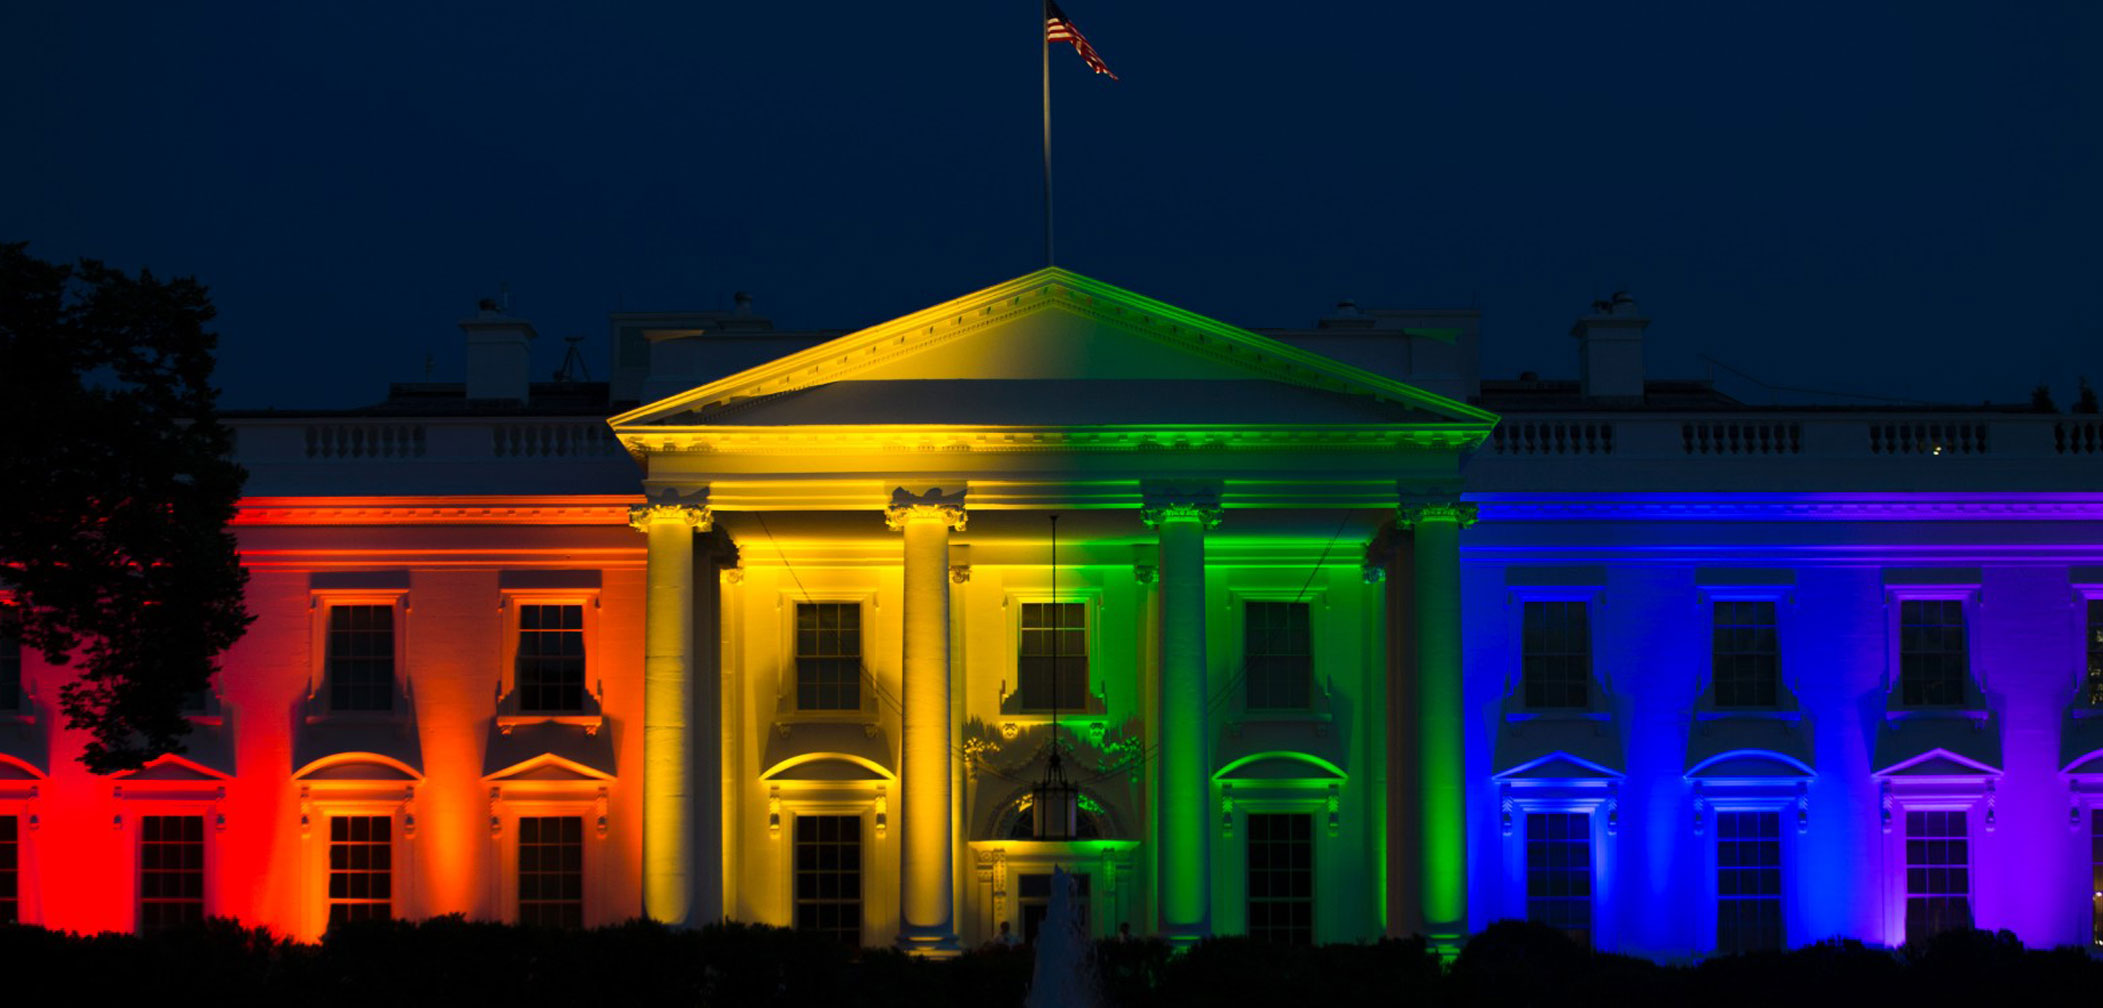 rainbow, white house, lgbt page removed from White House website